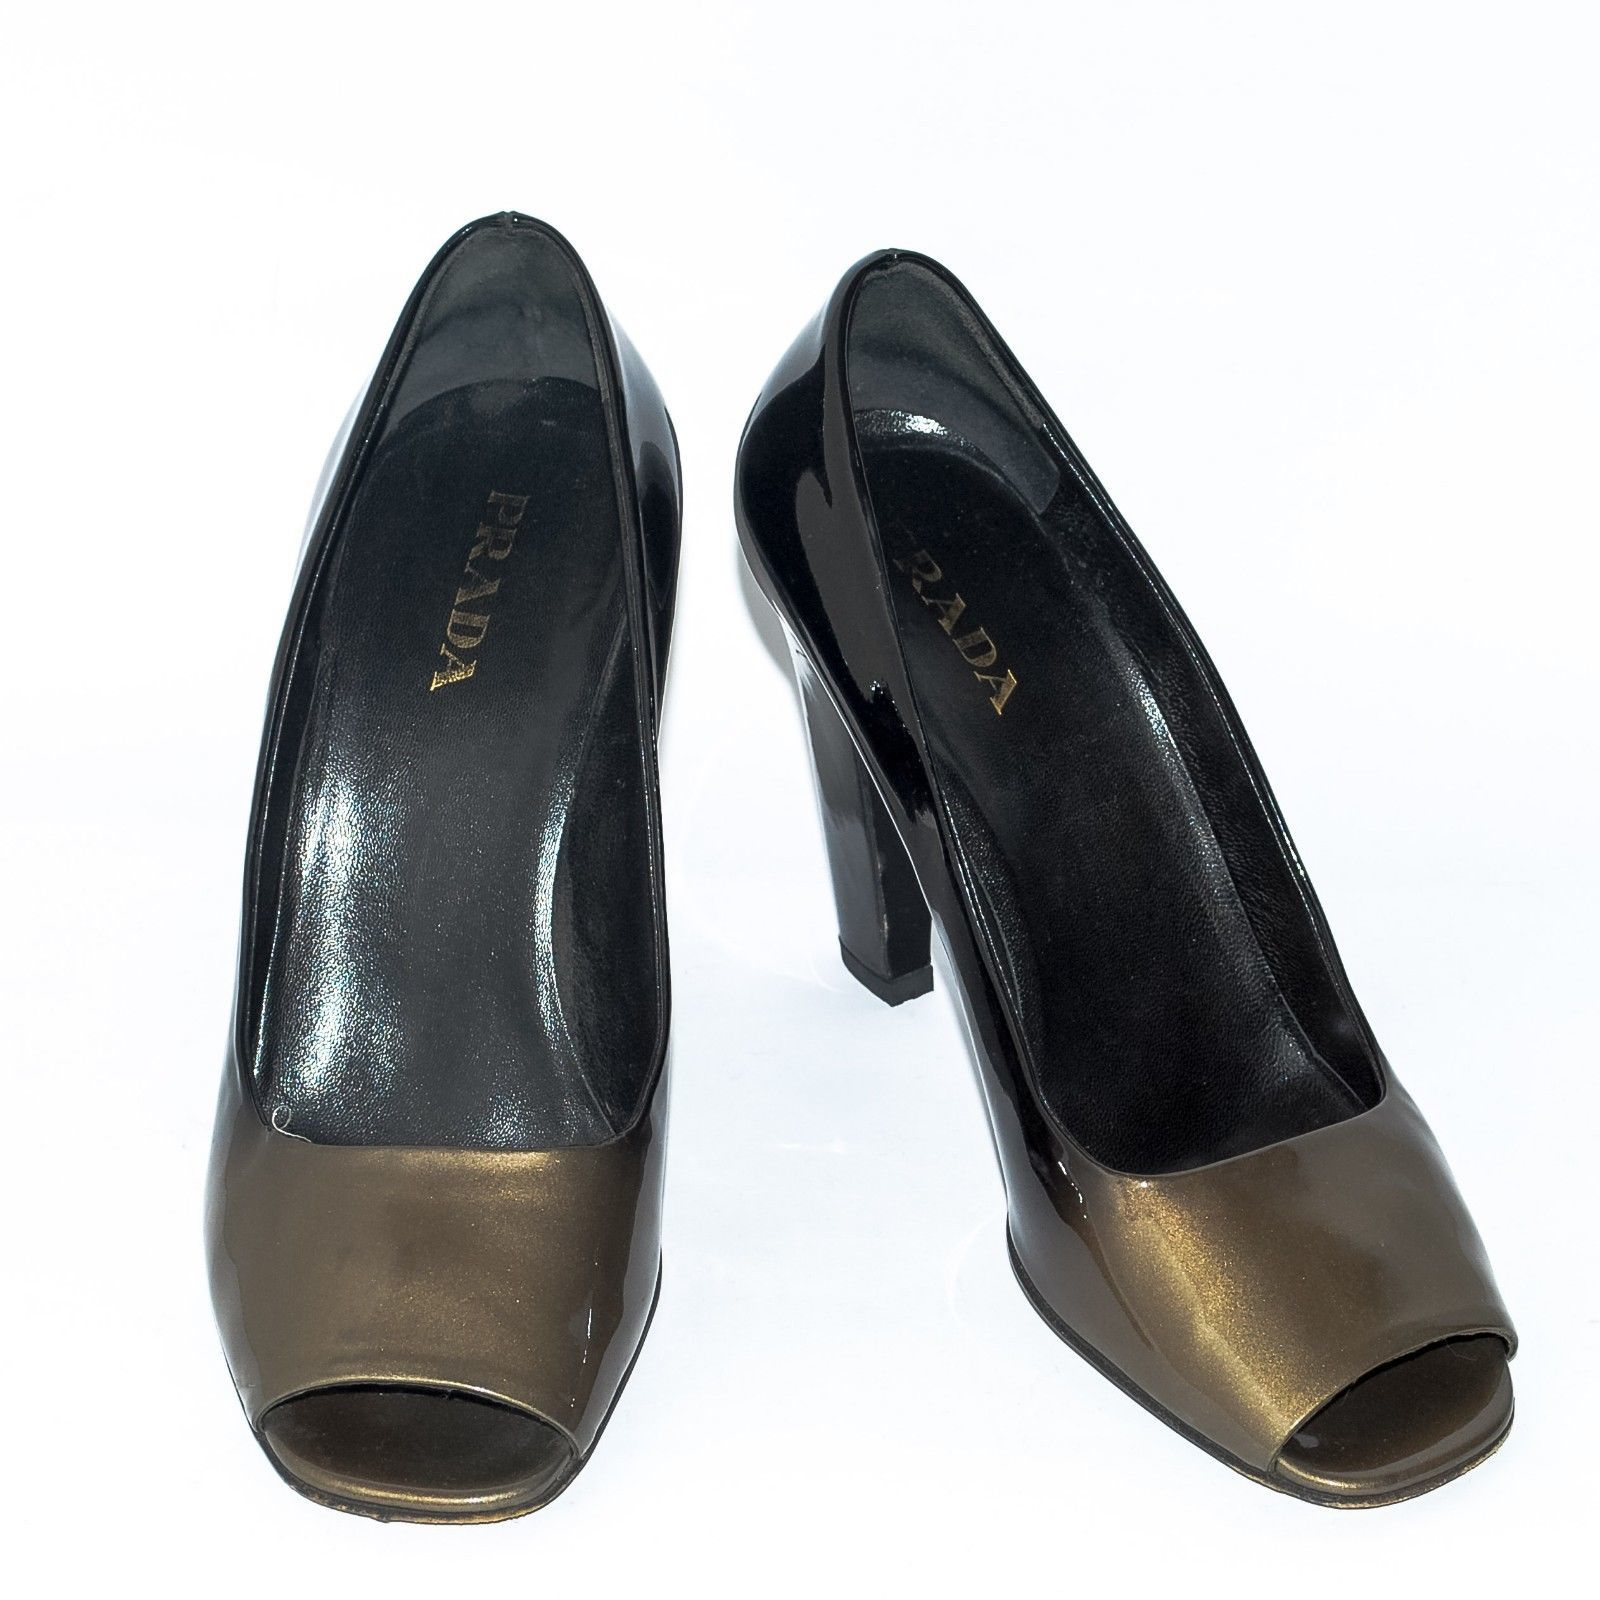 4564ab546390 PRADA Metallic Black Patent Leather High and 50 similar items. S l1600